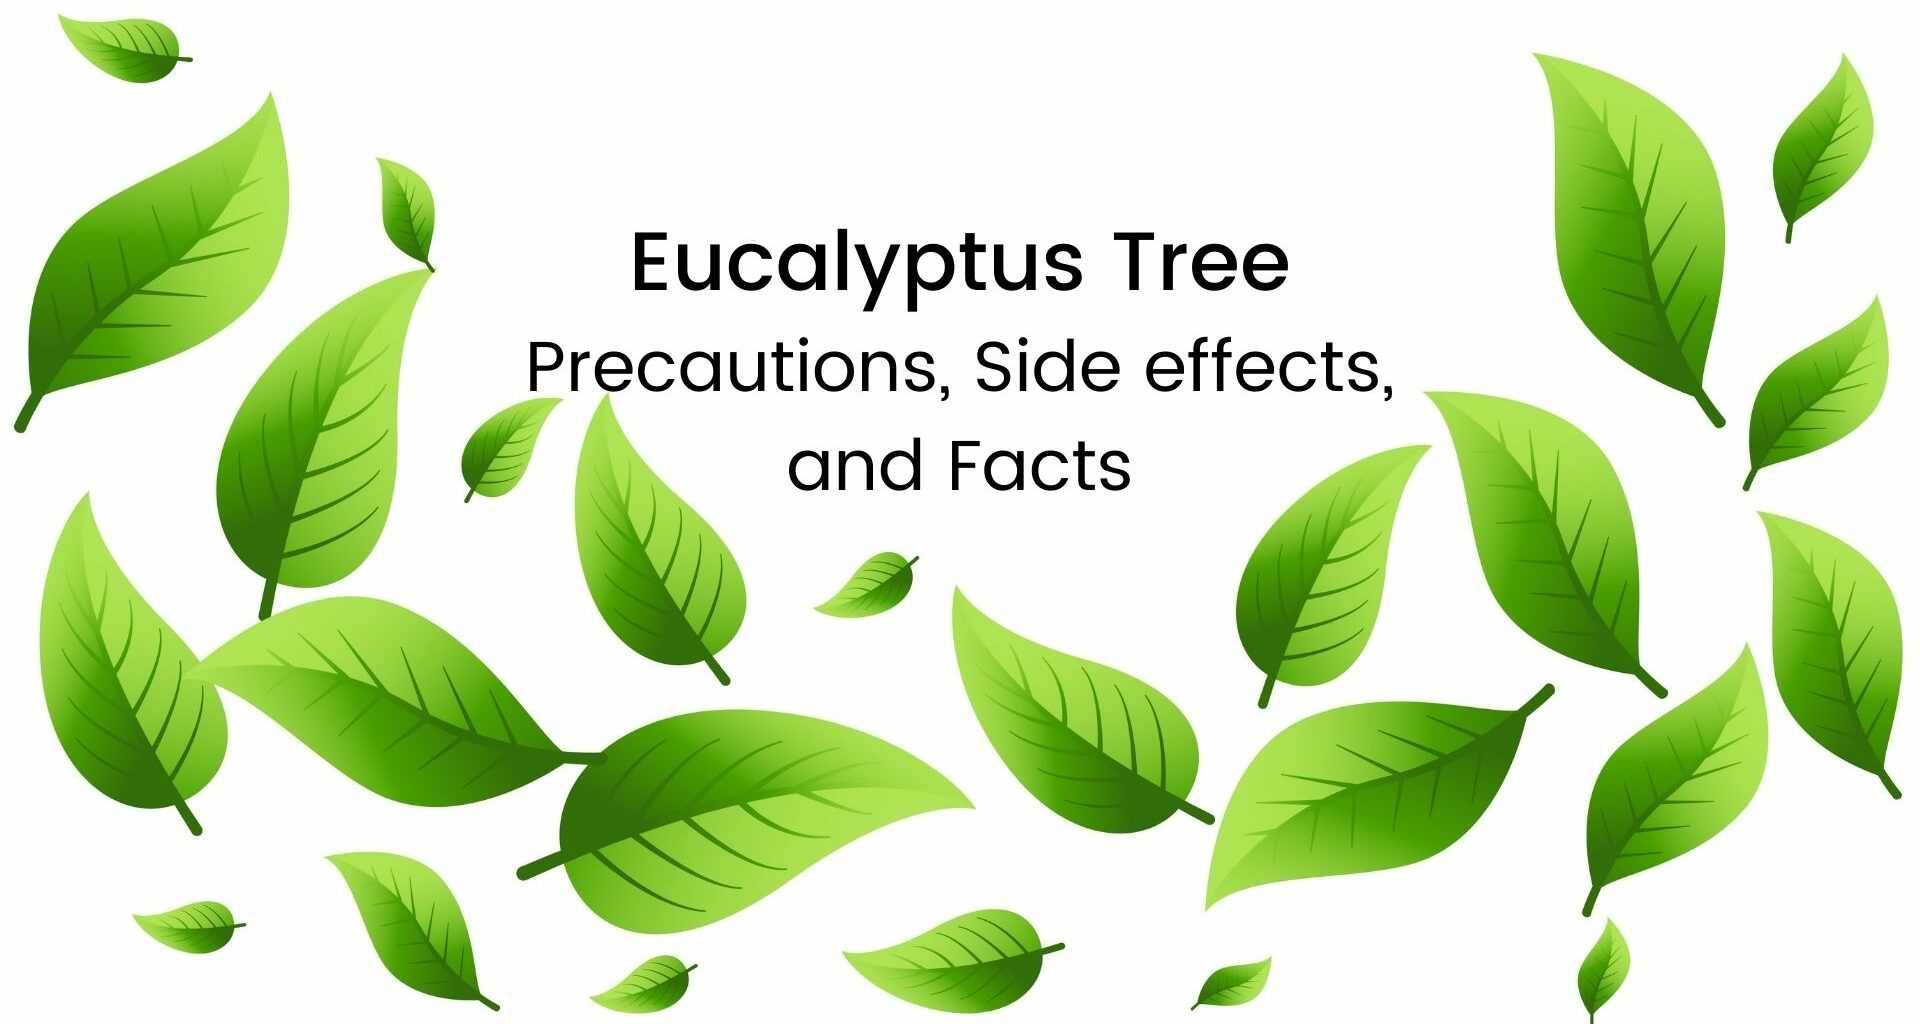 Eucalyptus-Tree-Precautions-Side-effects-and-Facts